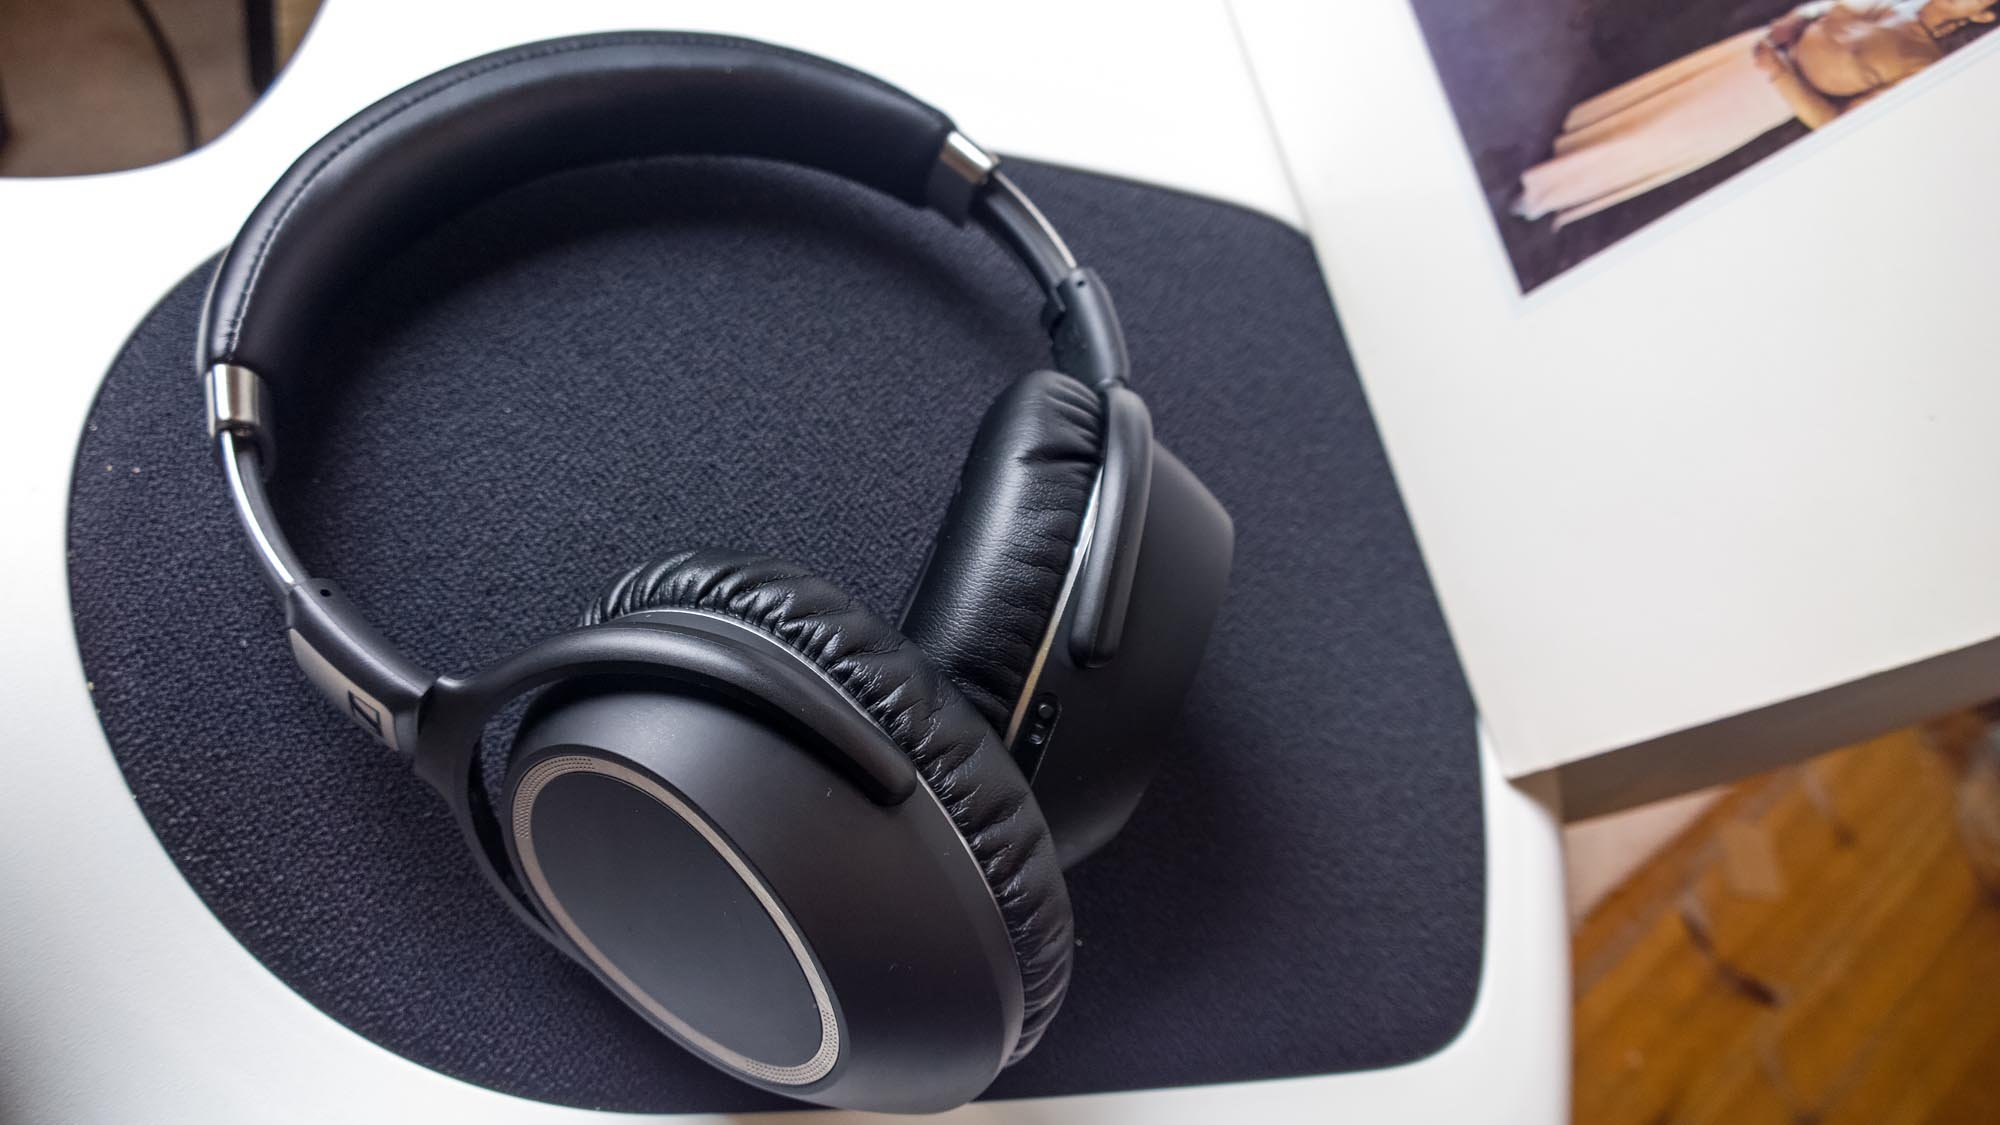 cf433377bd6 Sennheiser PXC 550 Wireless review: Say no to noise, say yes to music |  Expert Reviews